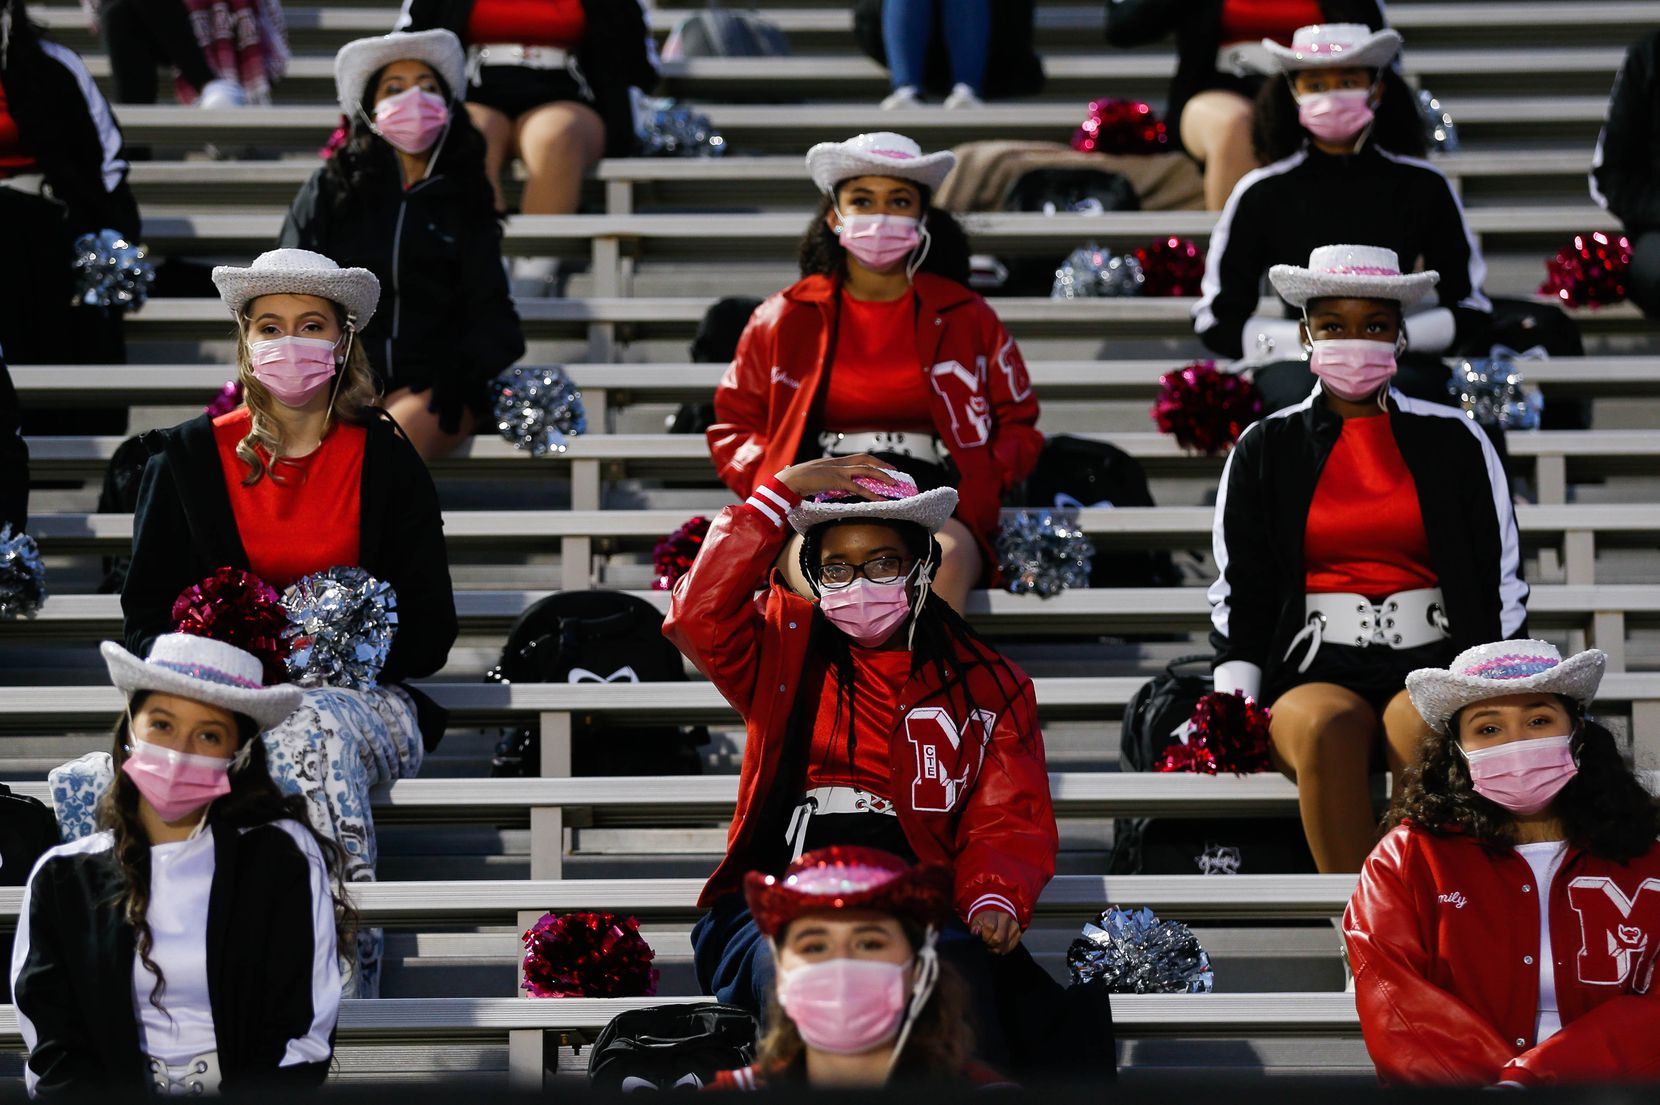 Irving MacArthur High School students before a football game against Lake Highlands at Joy & Ralph Ellis Stadium in Irving on Friday, Oct. 23, 2020. (Juan Figueroa/ The Dallas Morning News)